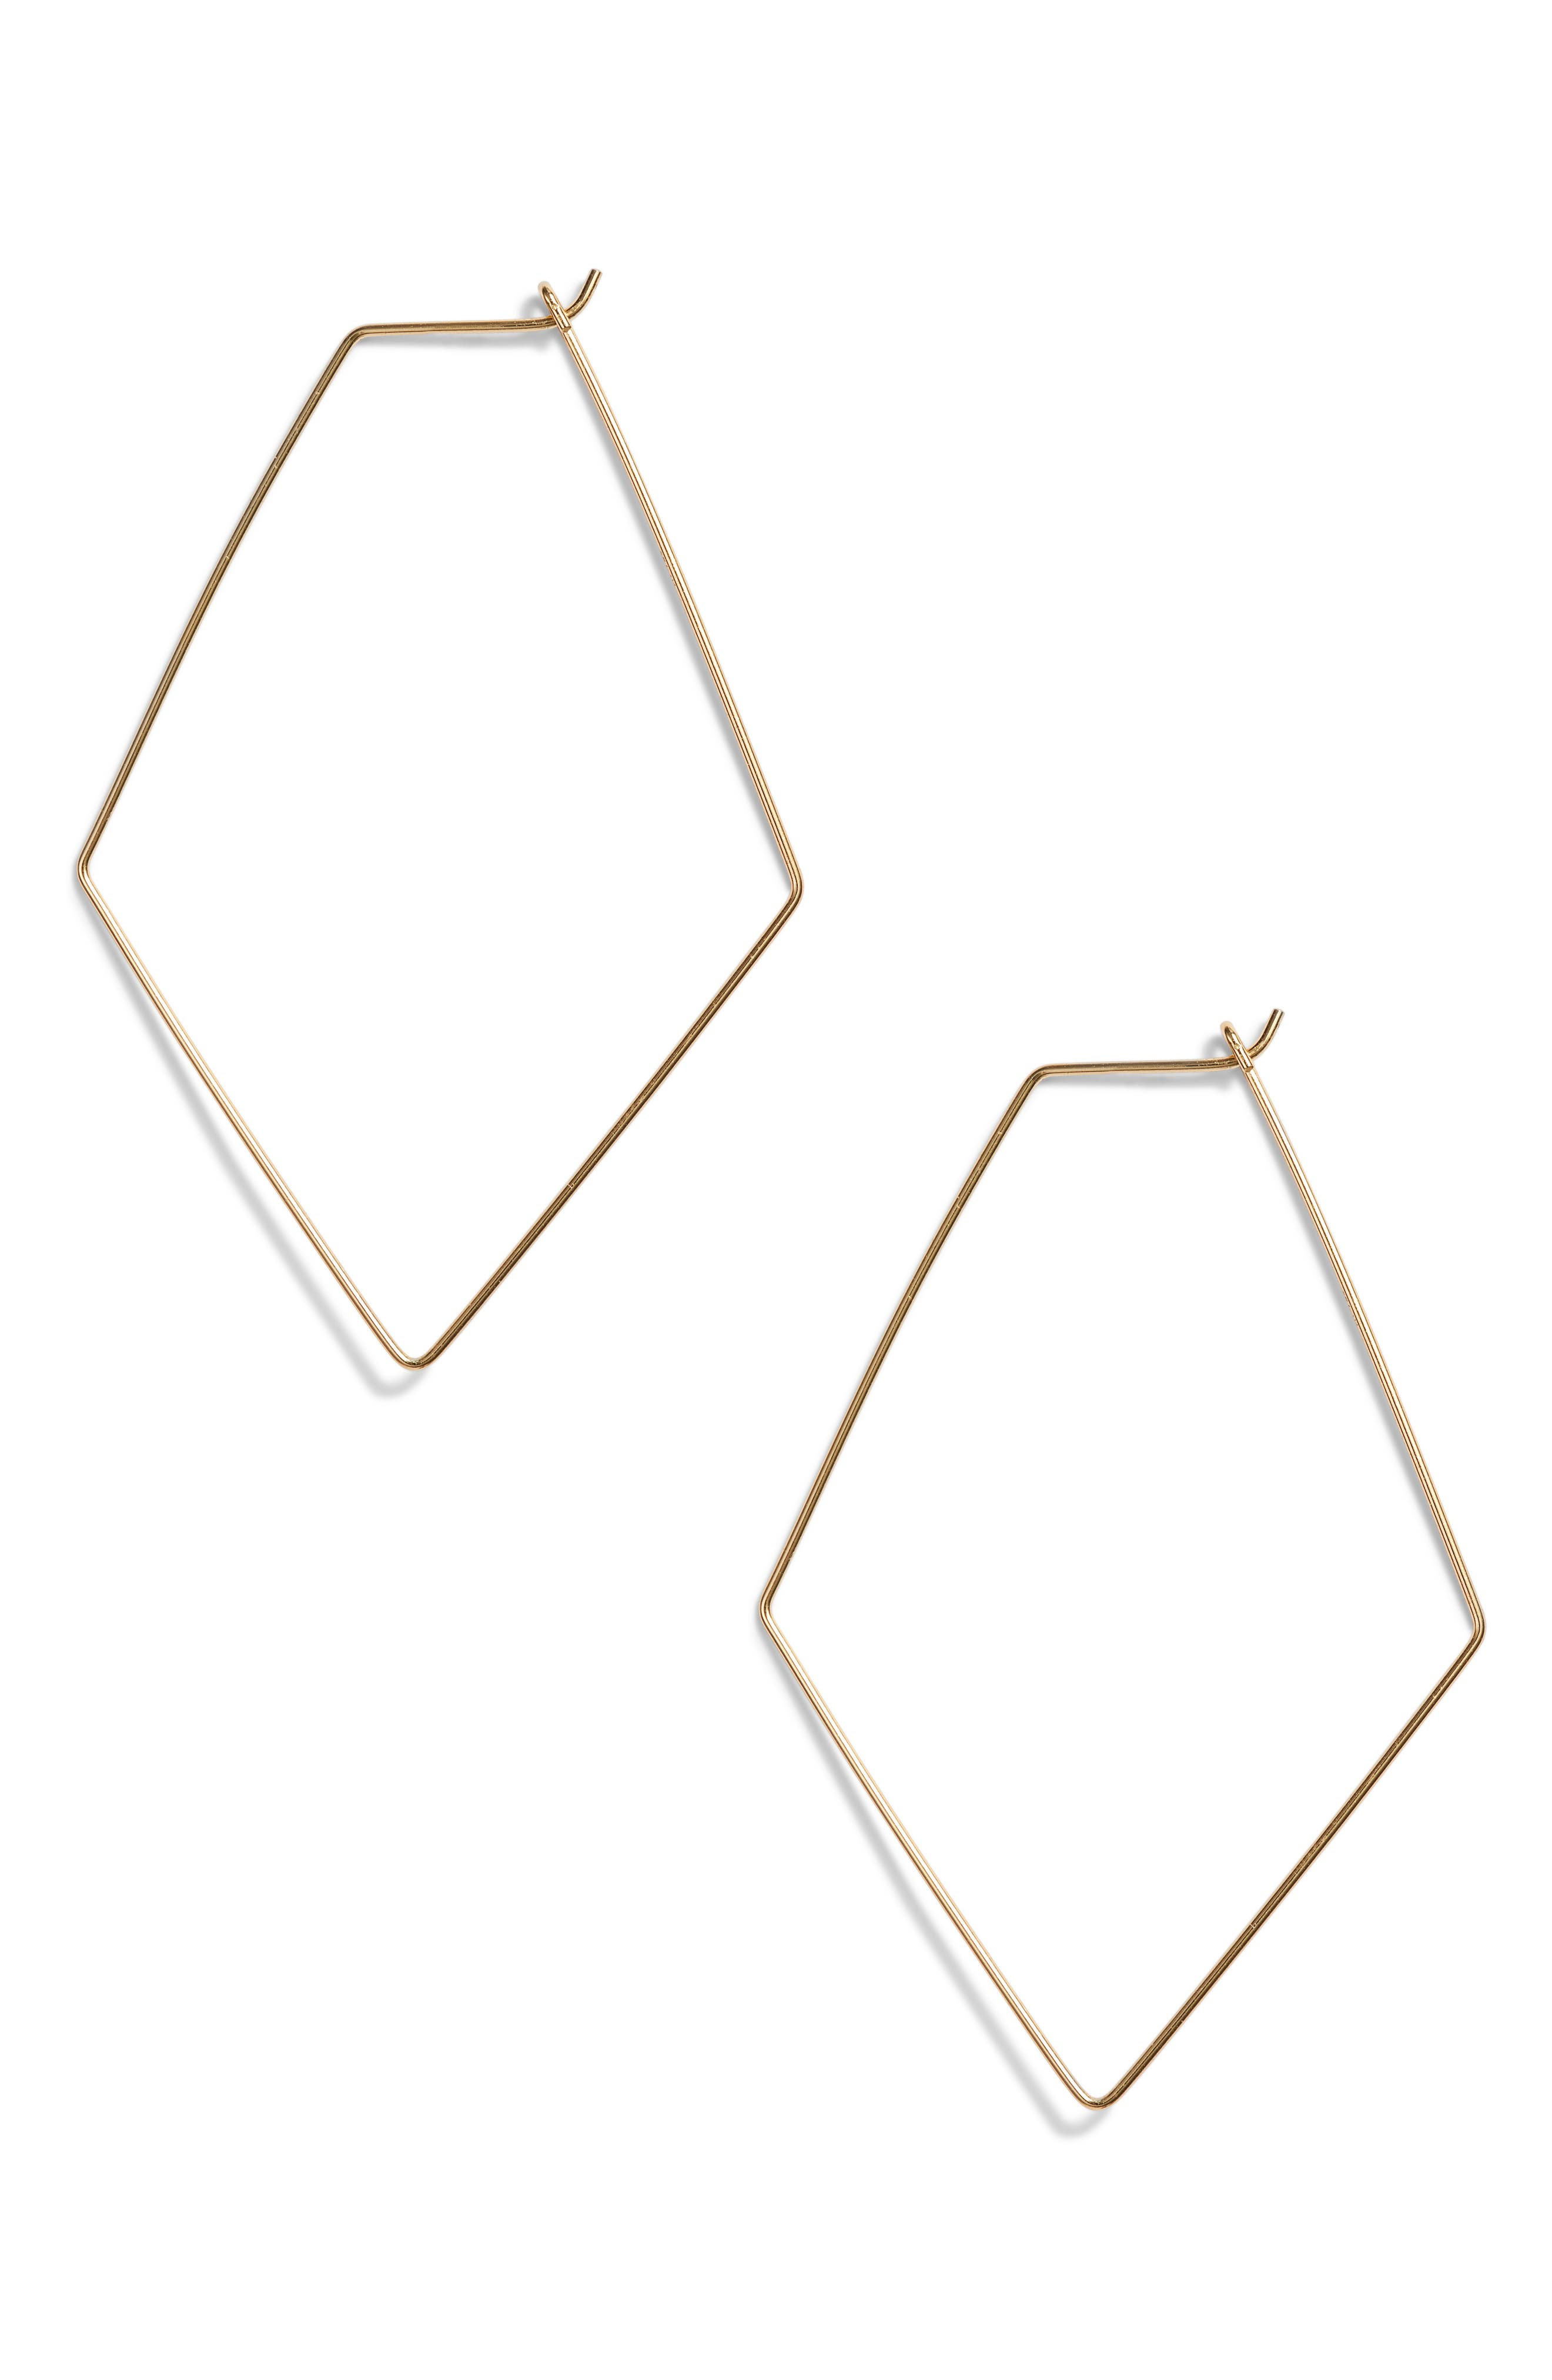 Rhombus Hoop Earrings,                         Main,                         color, GOLD